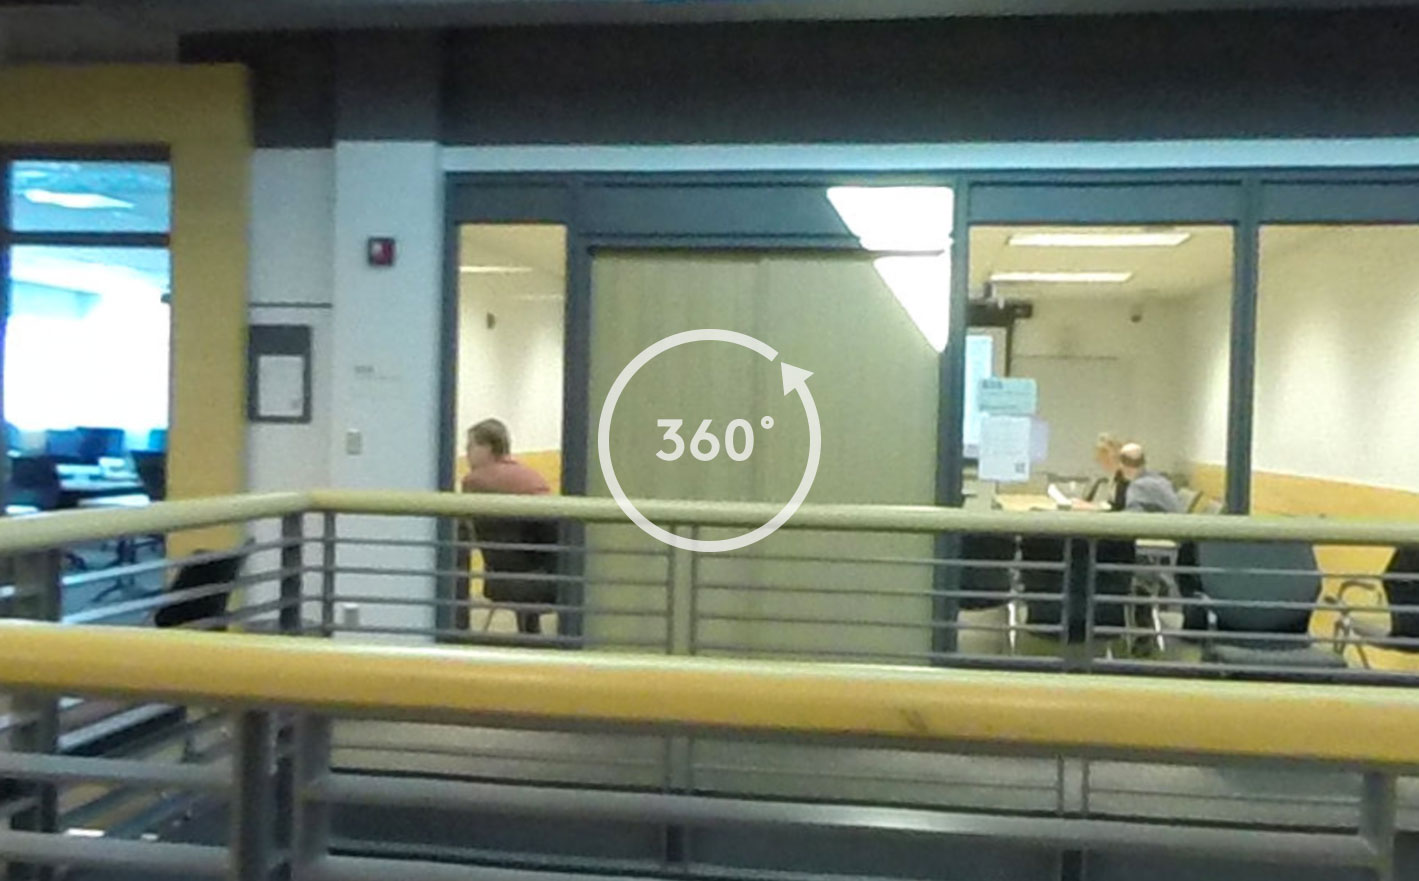 Bailey Lauerman Student Commons: links to 360 degree tour of third floor commons